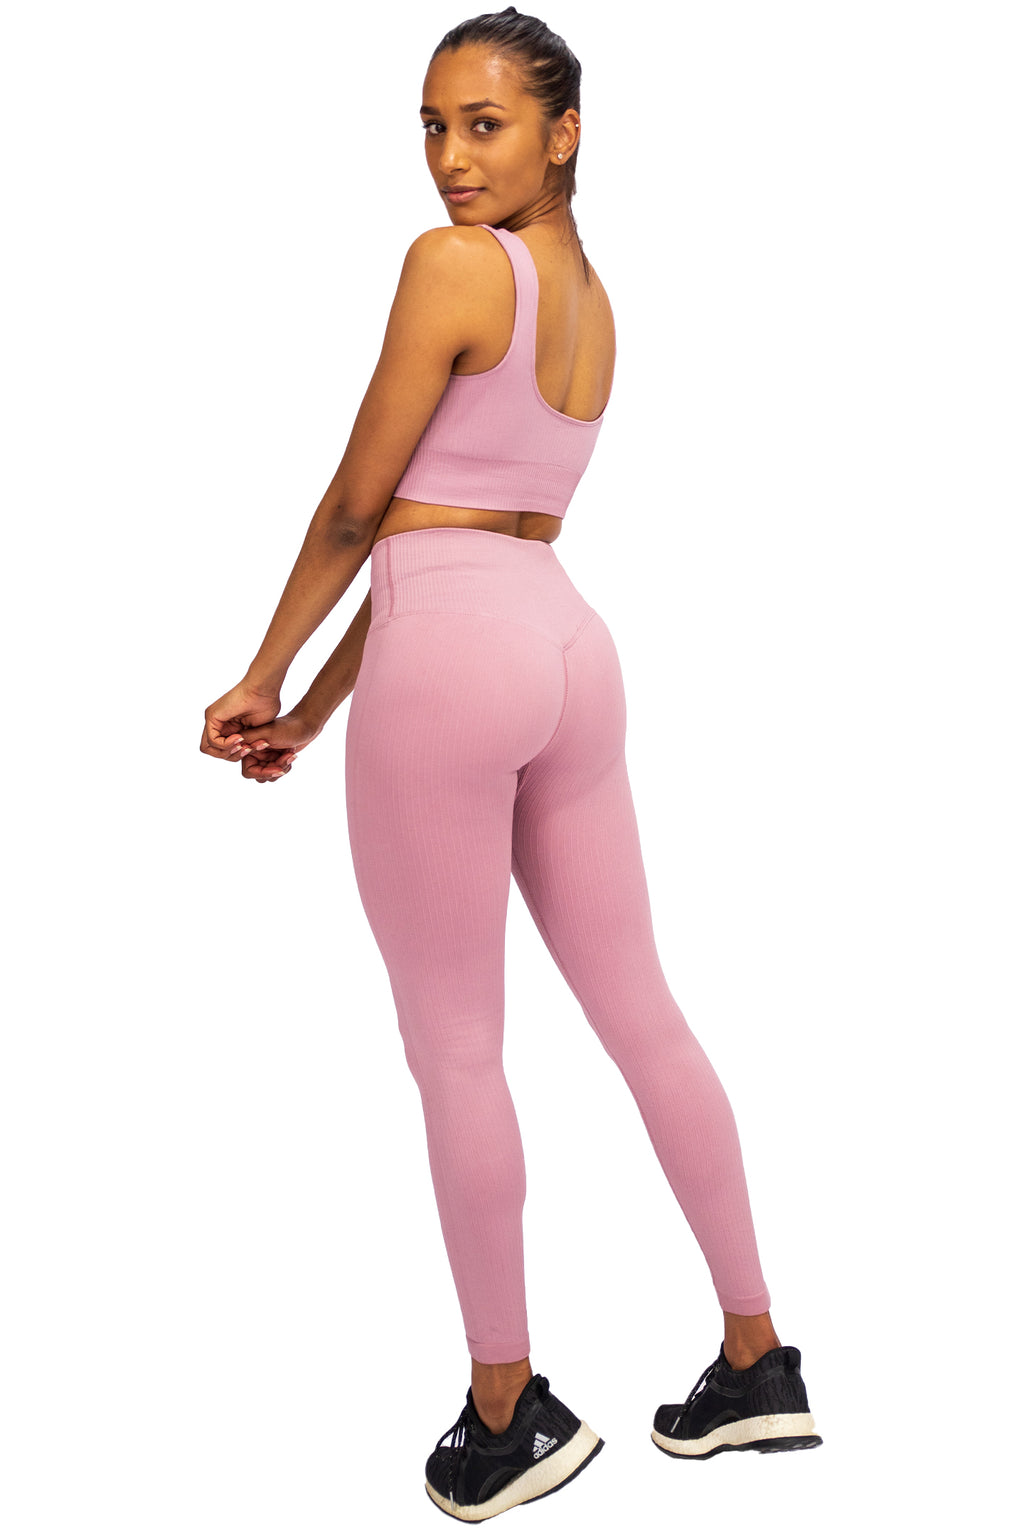 Ripped Seamless Leggings - Soft Pink